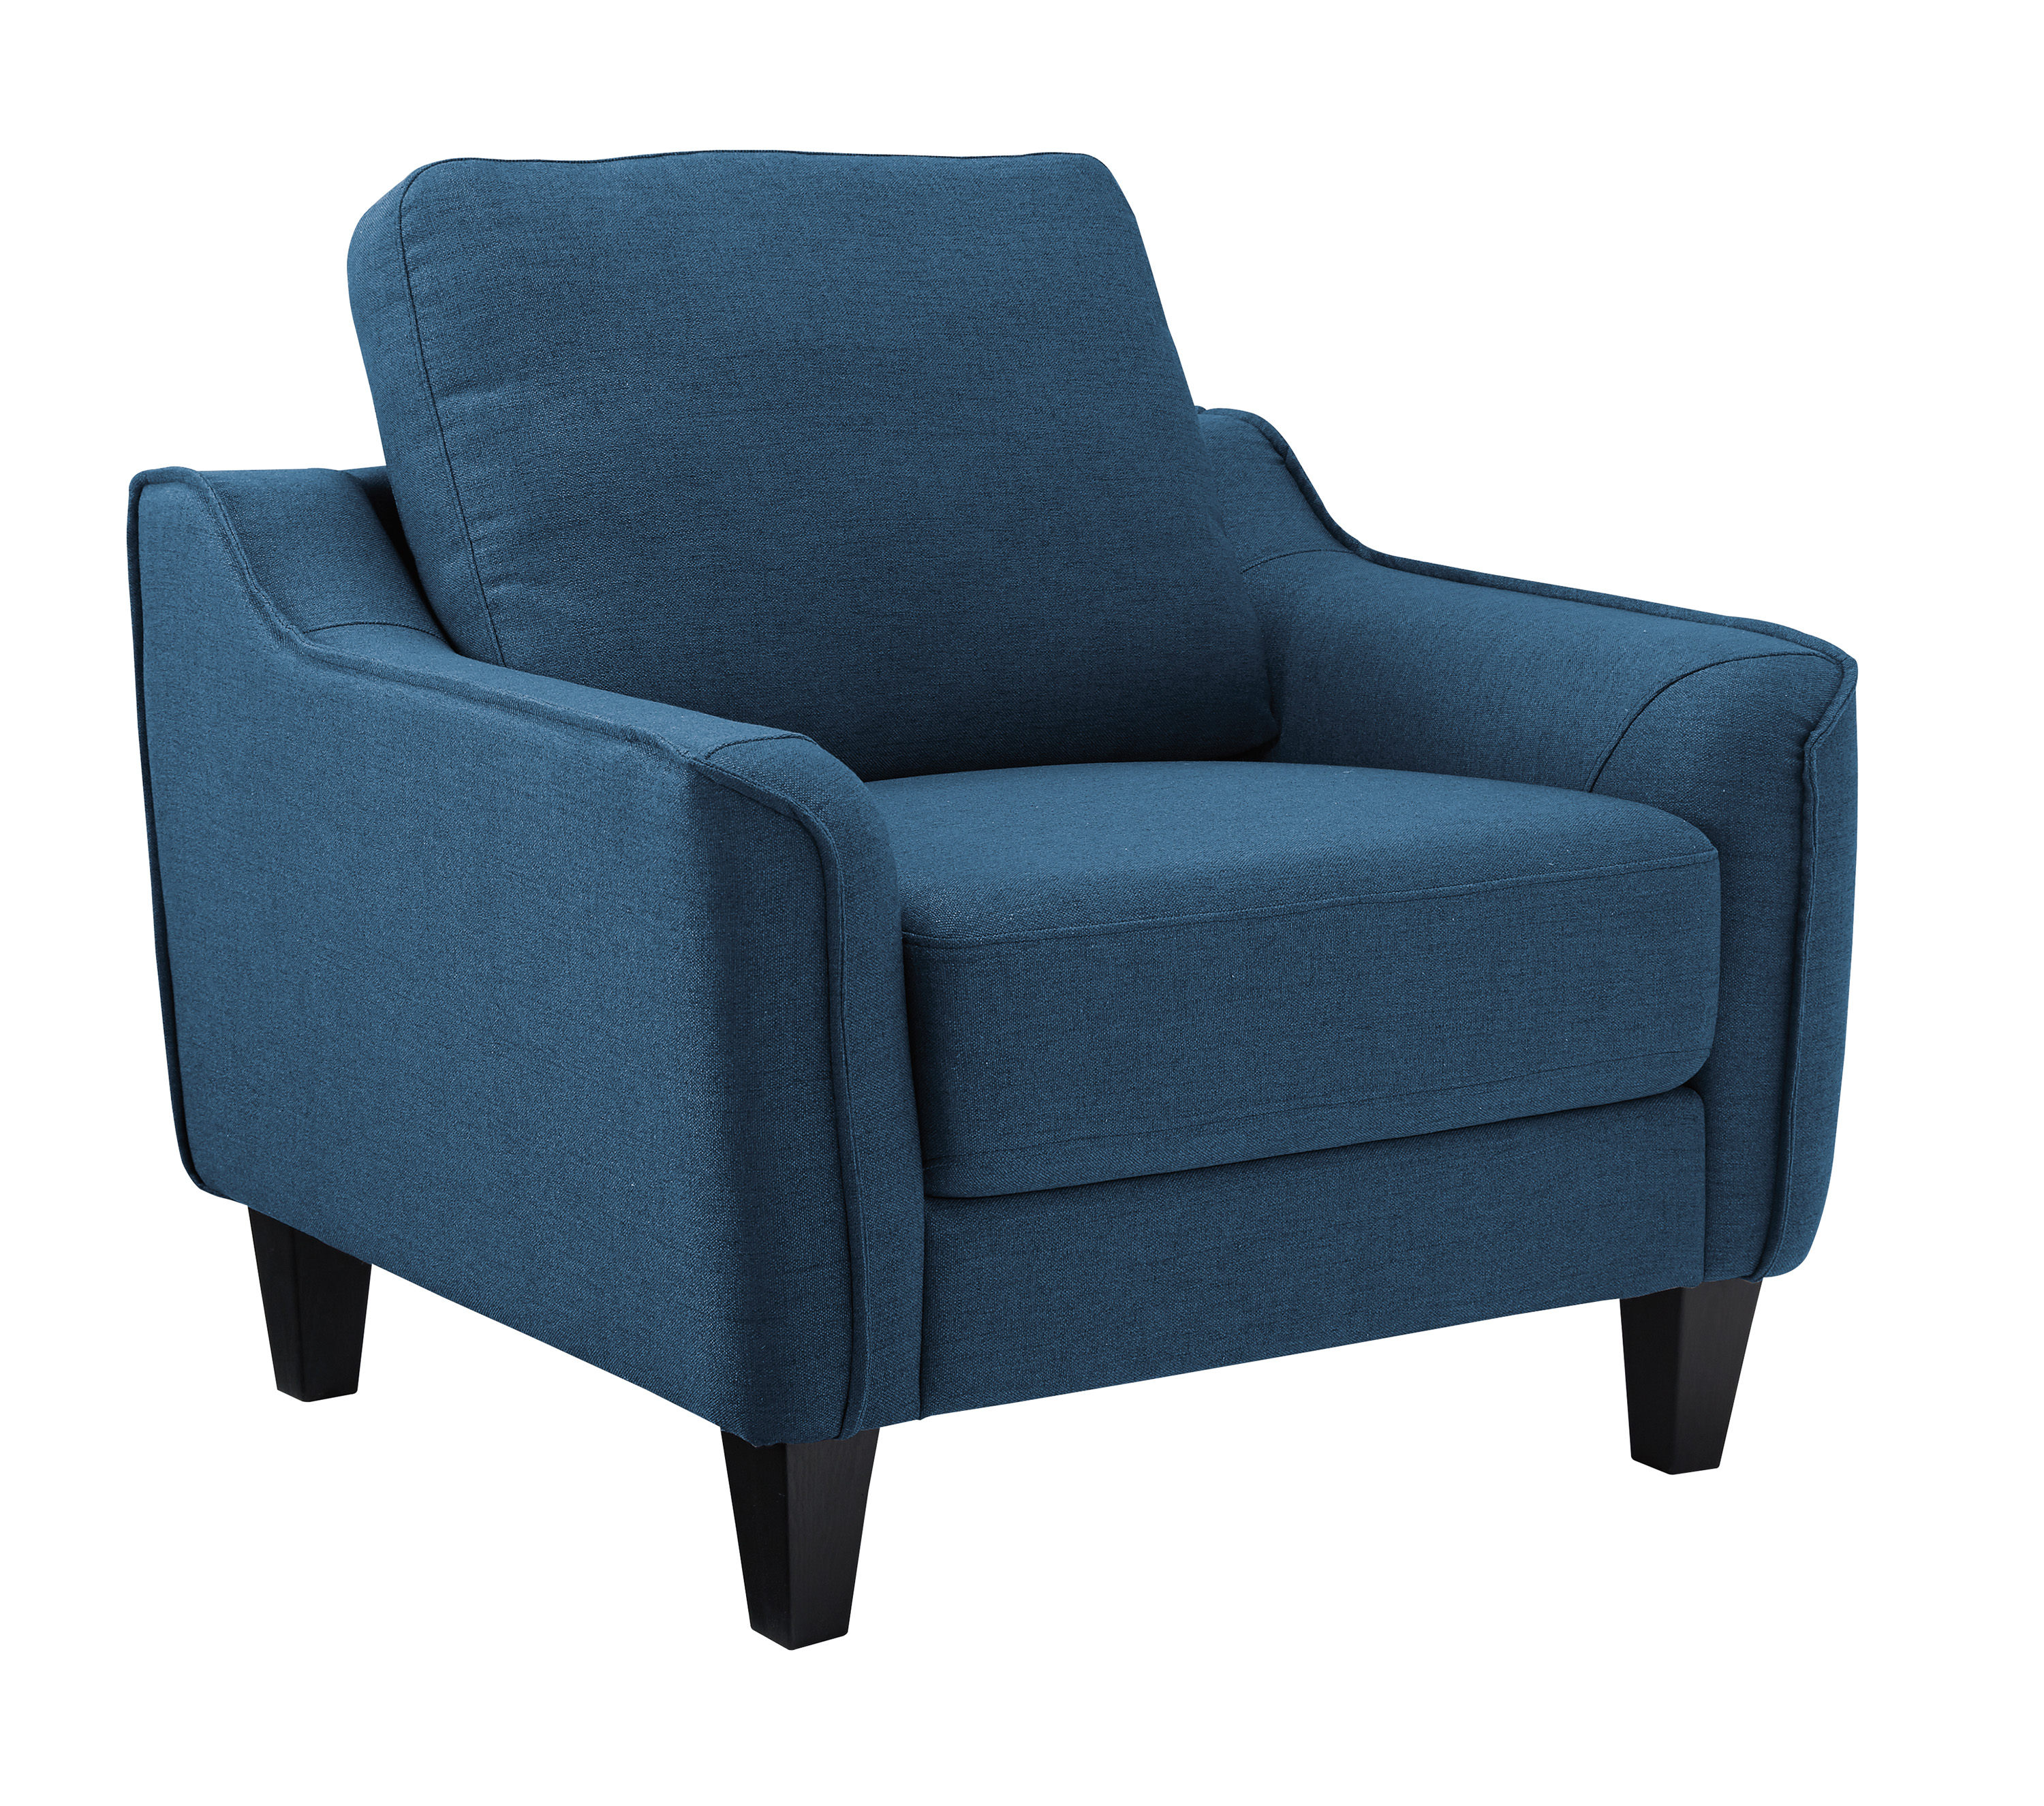 Ashley Furniture Jarreau Blue Chair Click To Enlarge